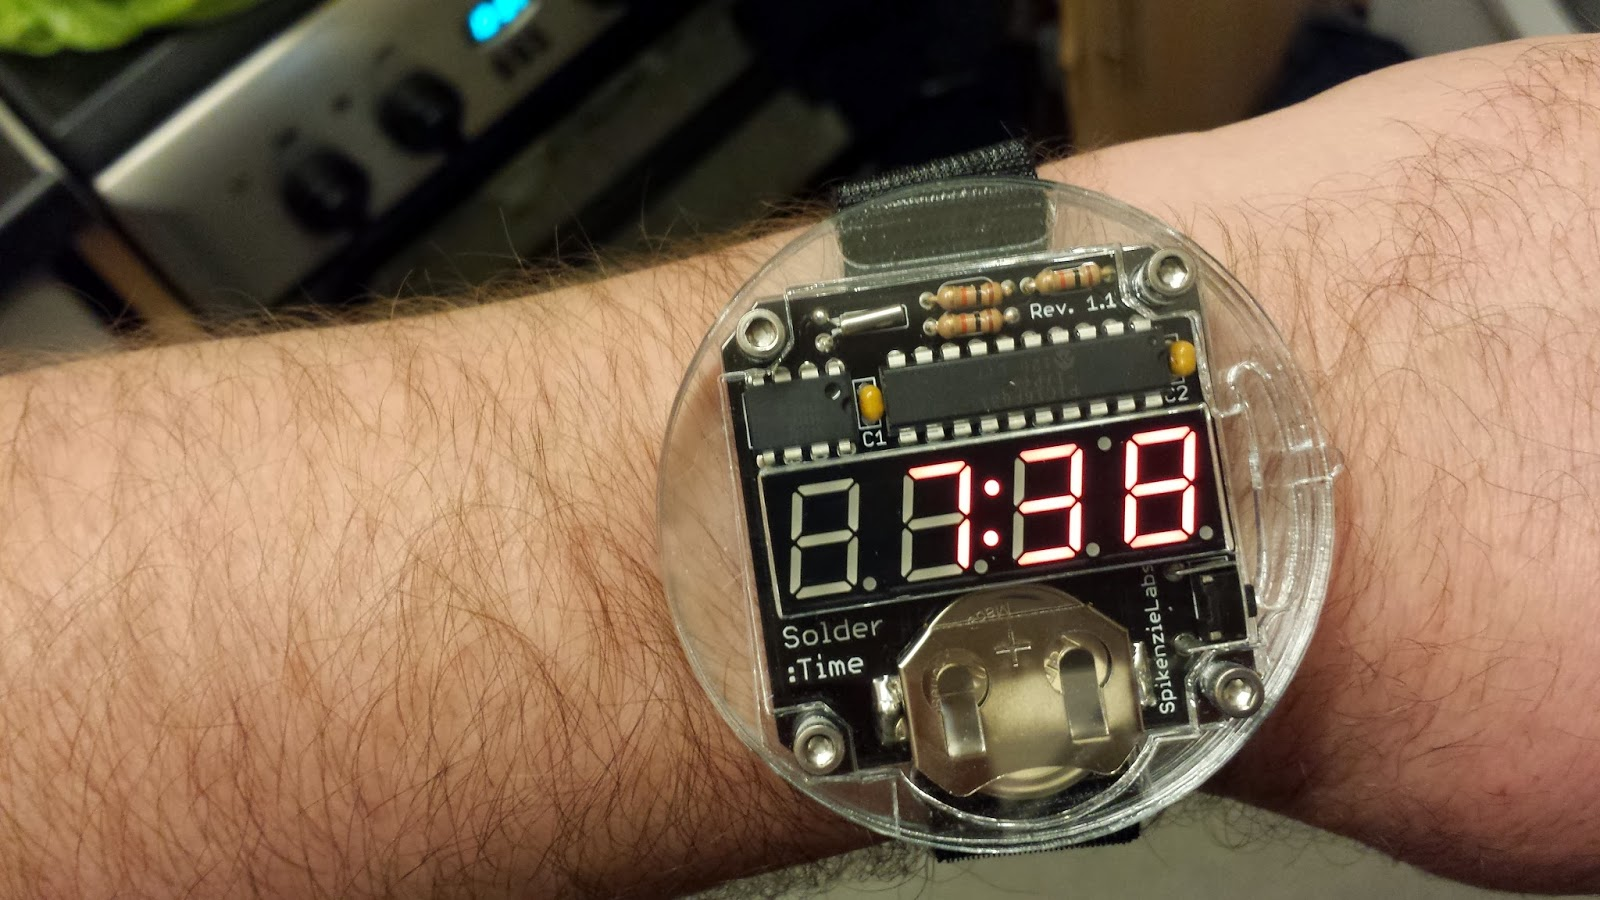 Daves Z80 Journey Circuitlab Arduino 555 Watchdog Circuit I Prefer A 24 Hour Clock And This Is Programmed Just To Display The 12 But Its Still Great Watch Wearing It About At Work Has Become